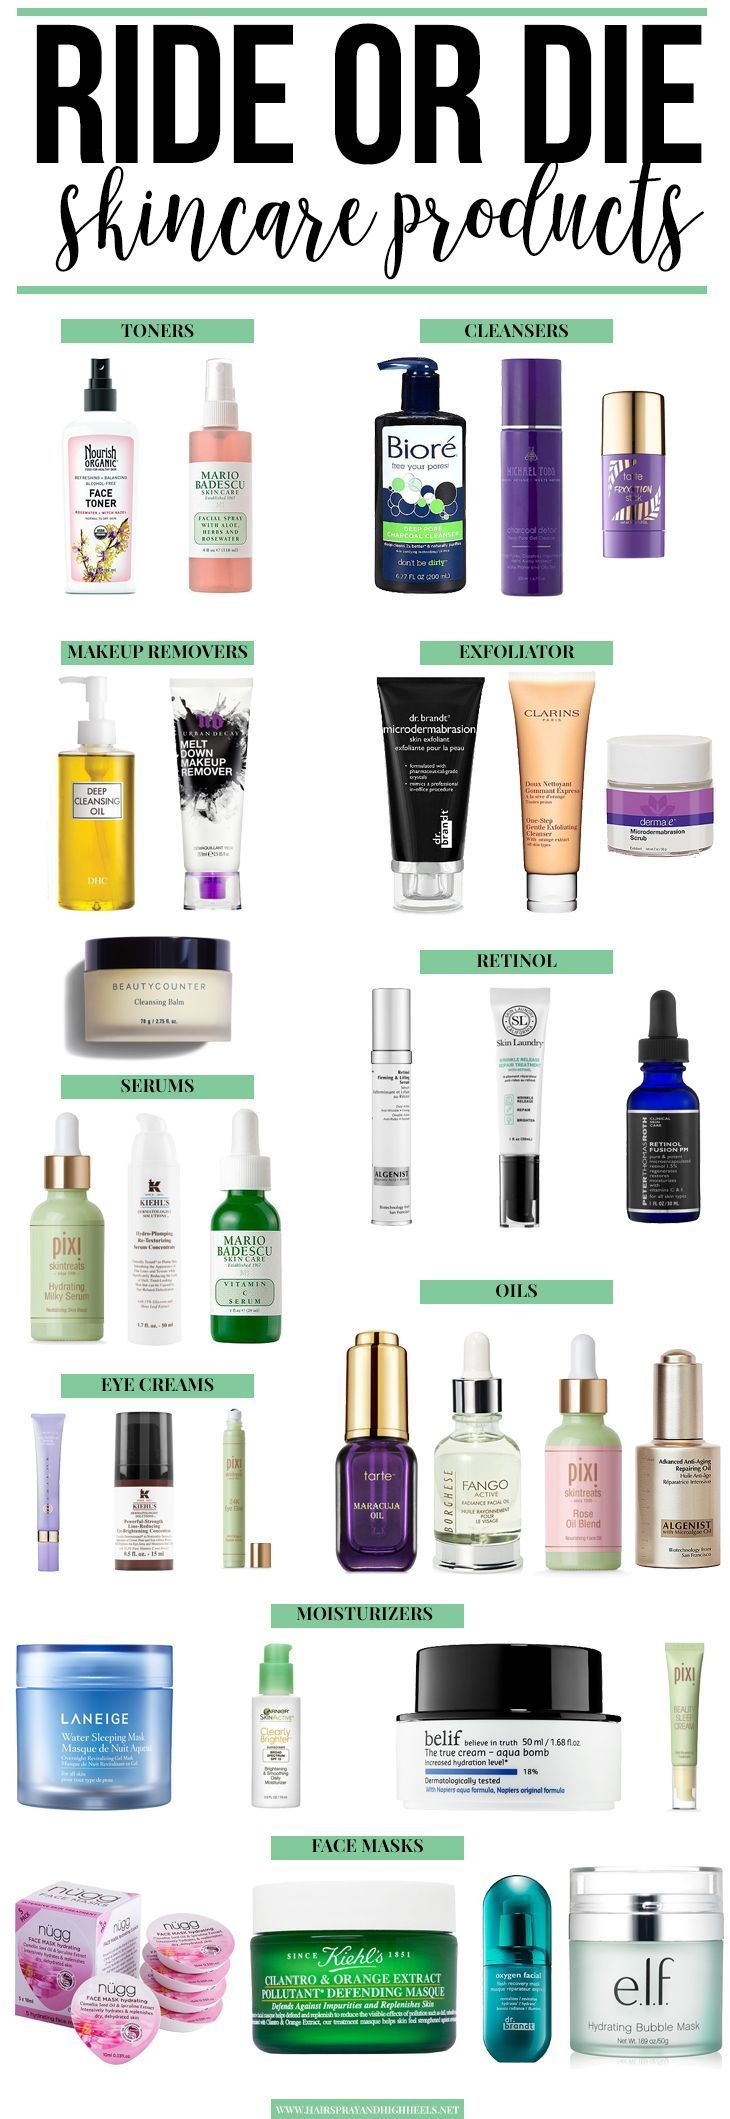 Ride Or Die Skincare Products